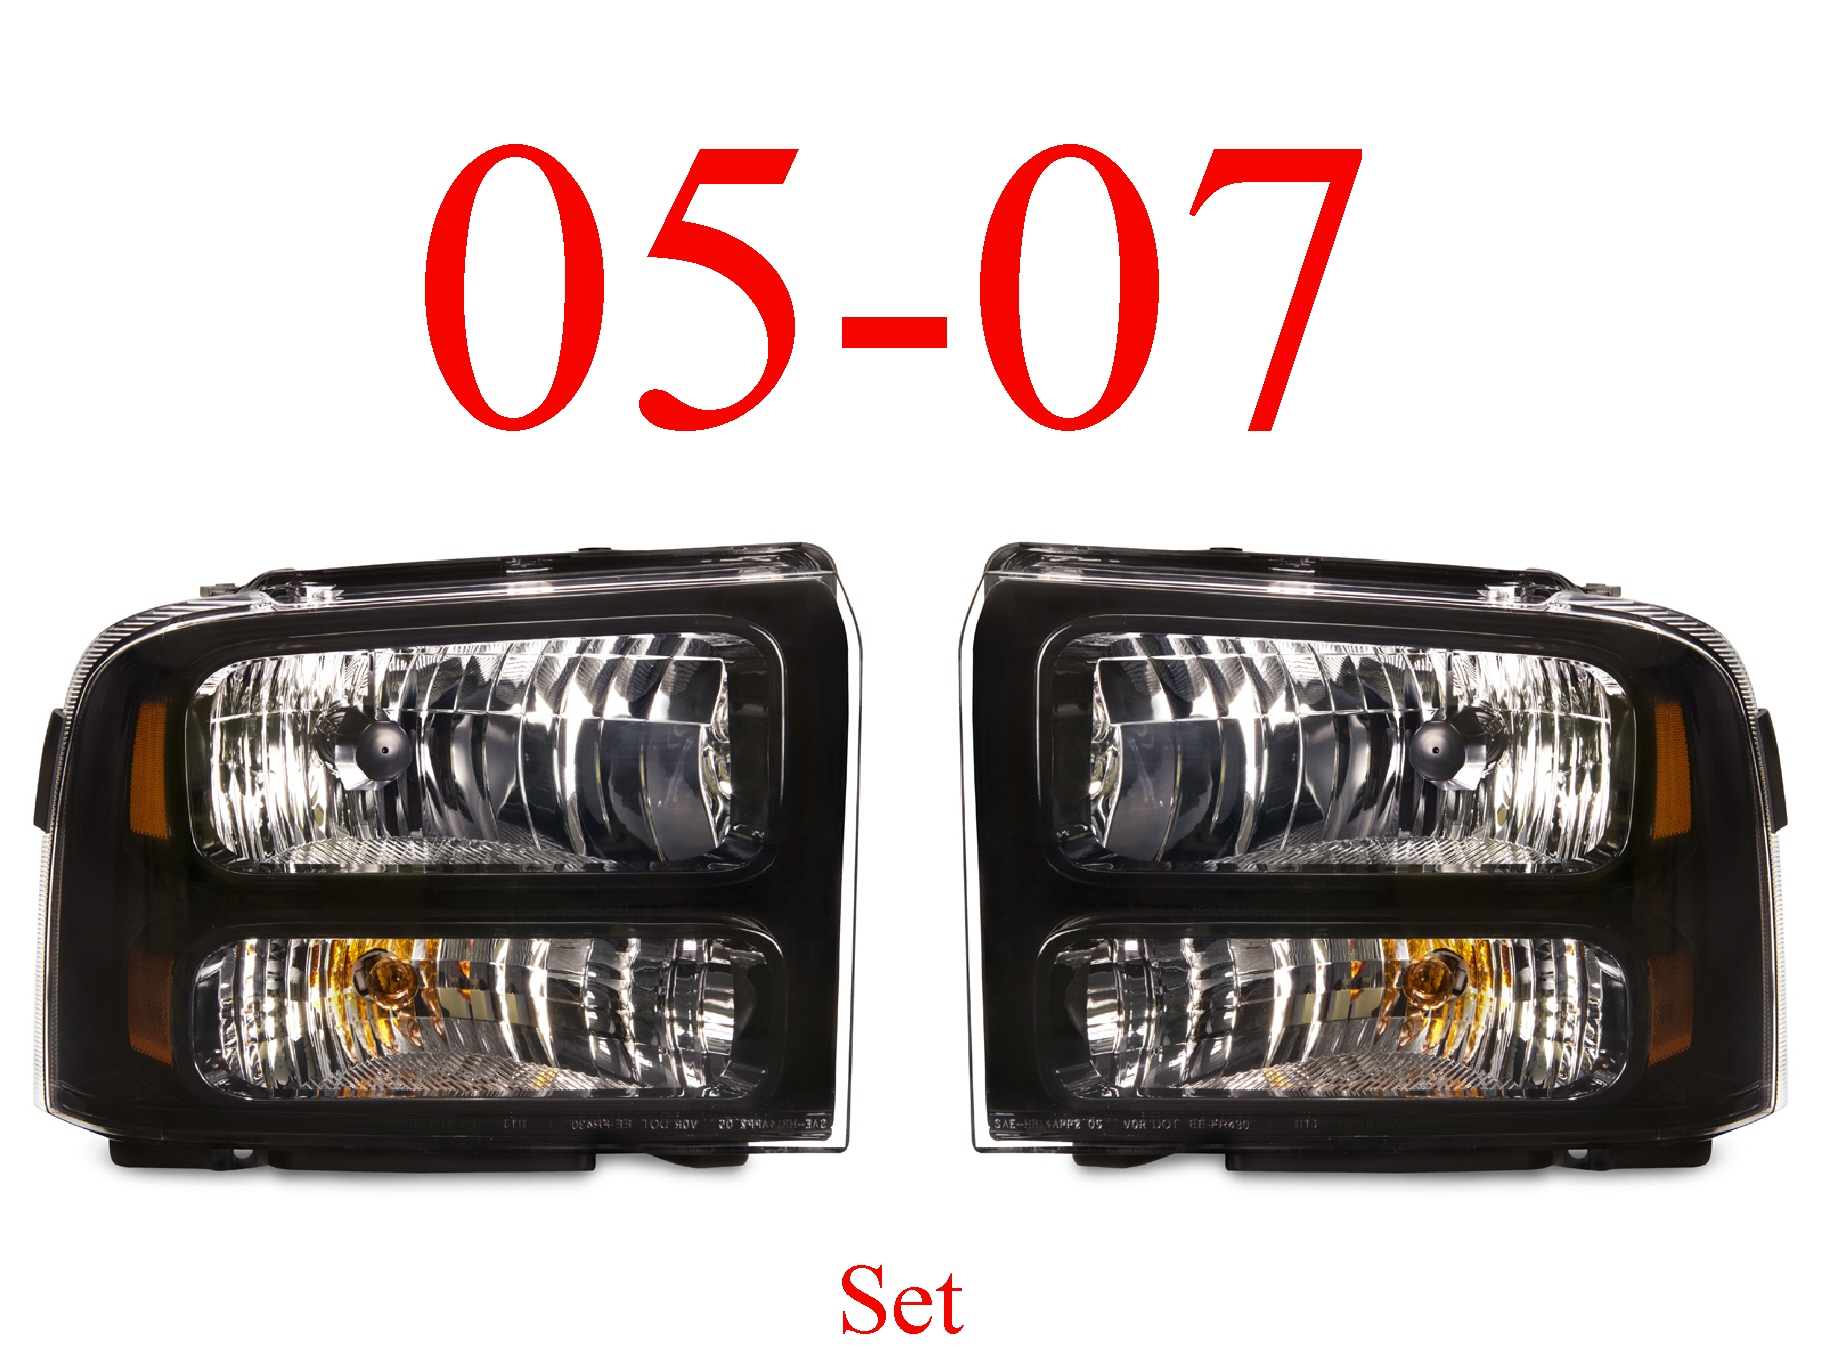 05-07 Super Duty Harley Davidson Head Light Set